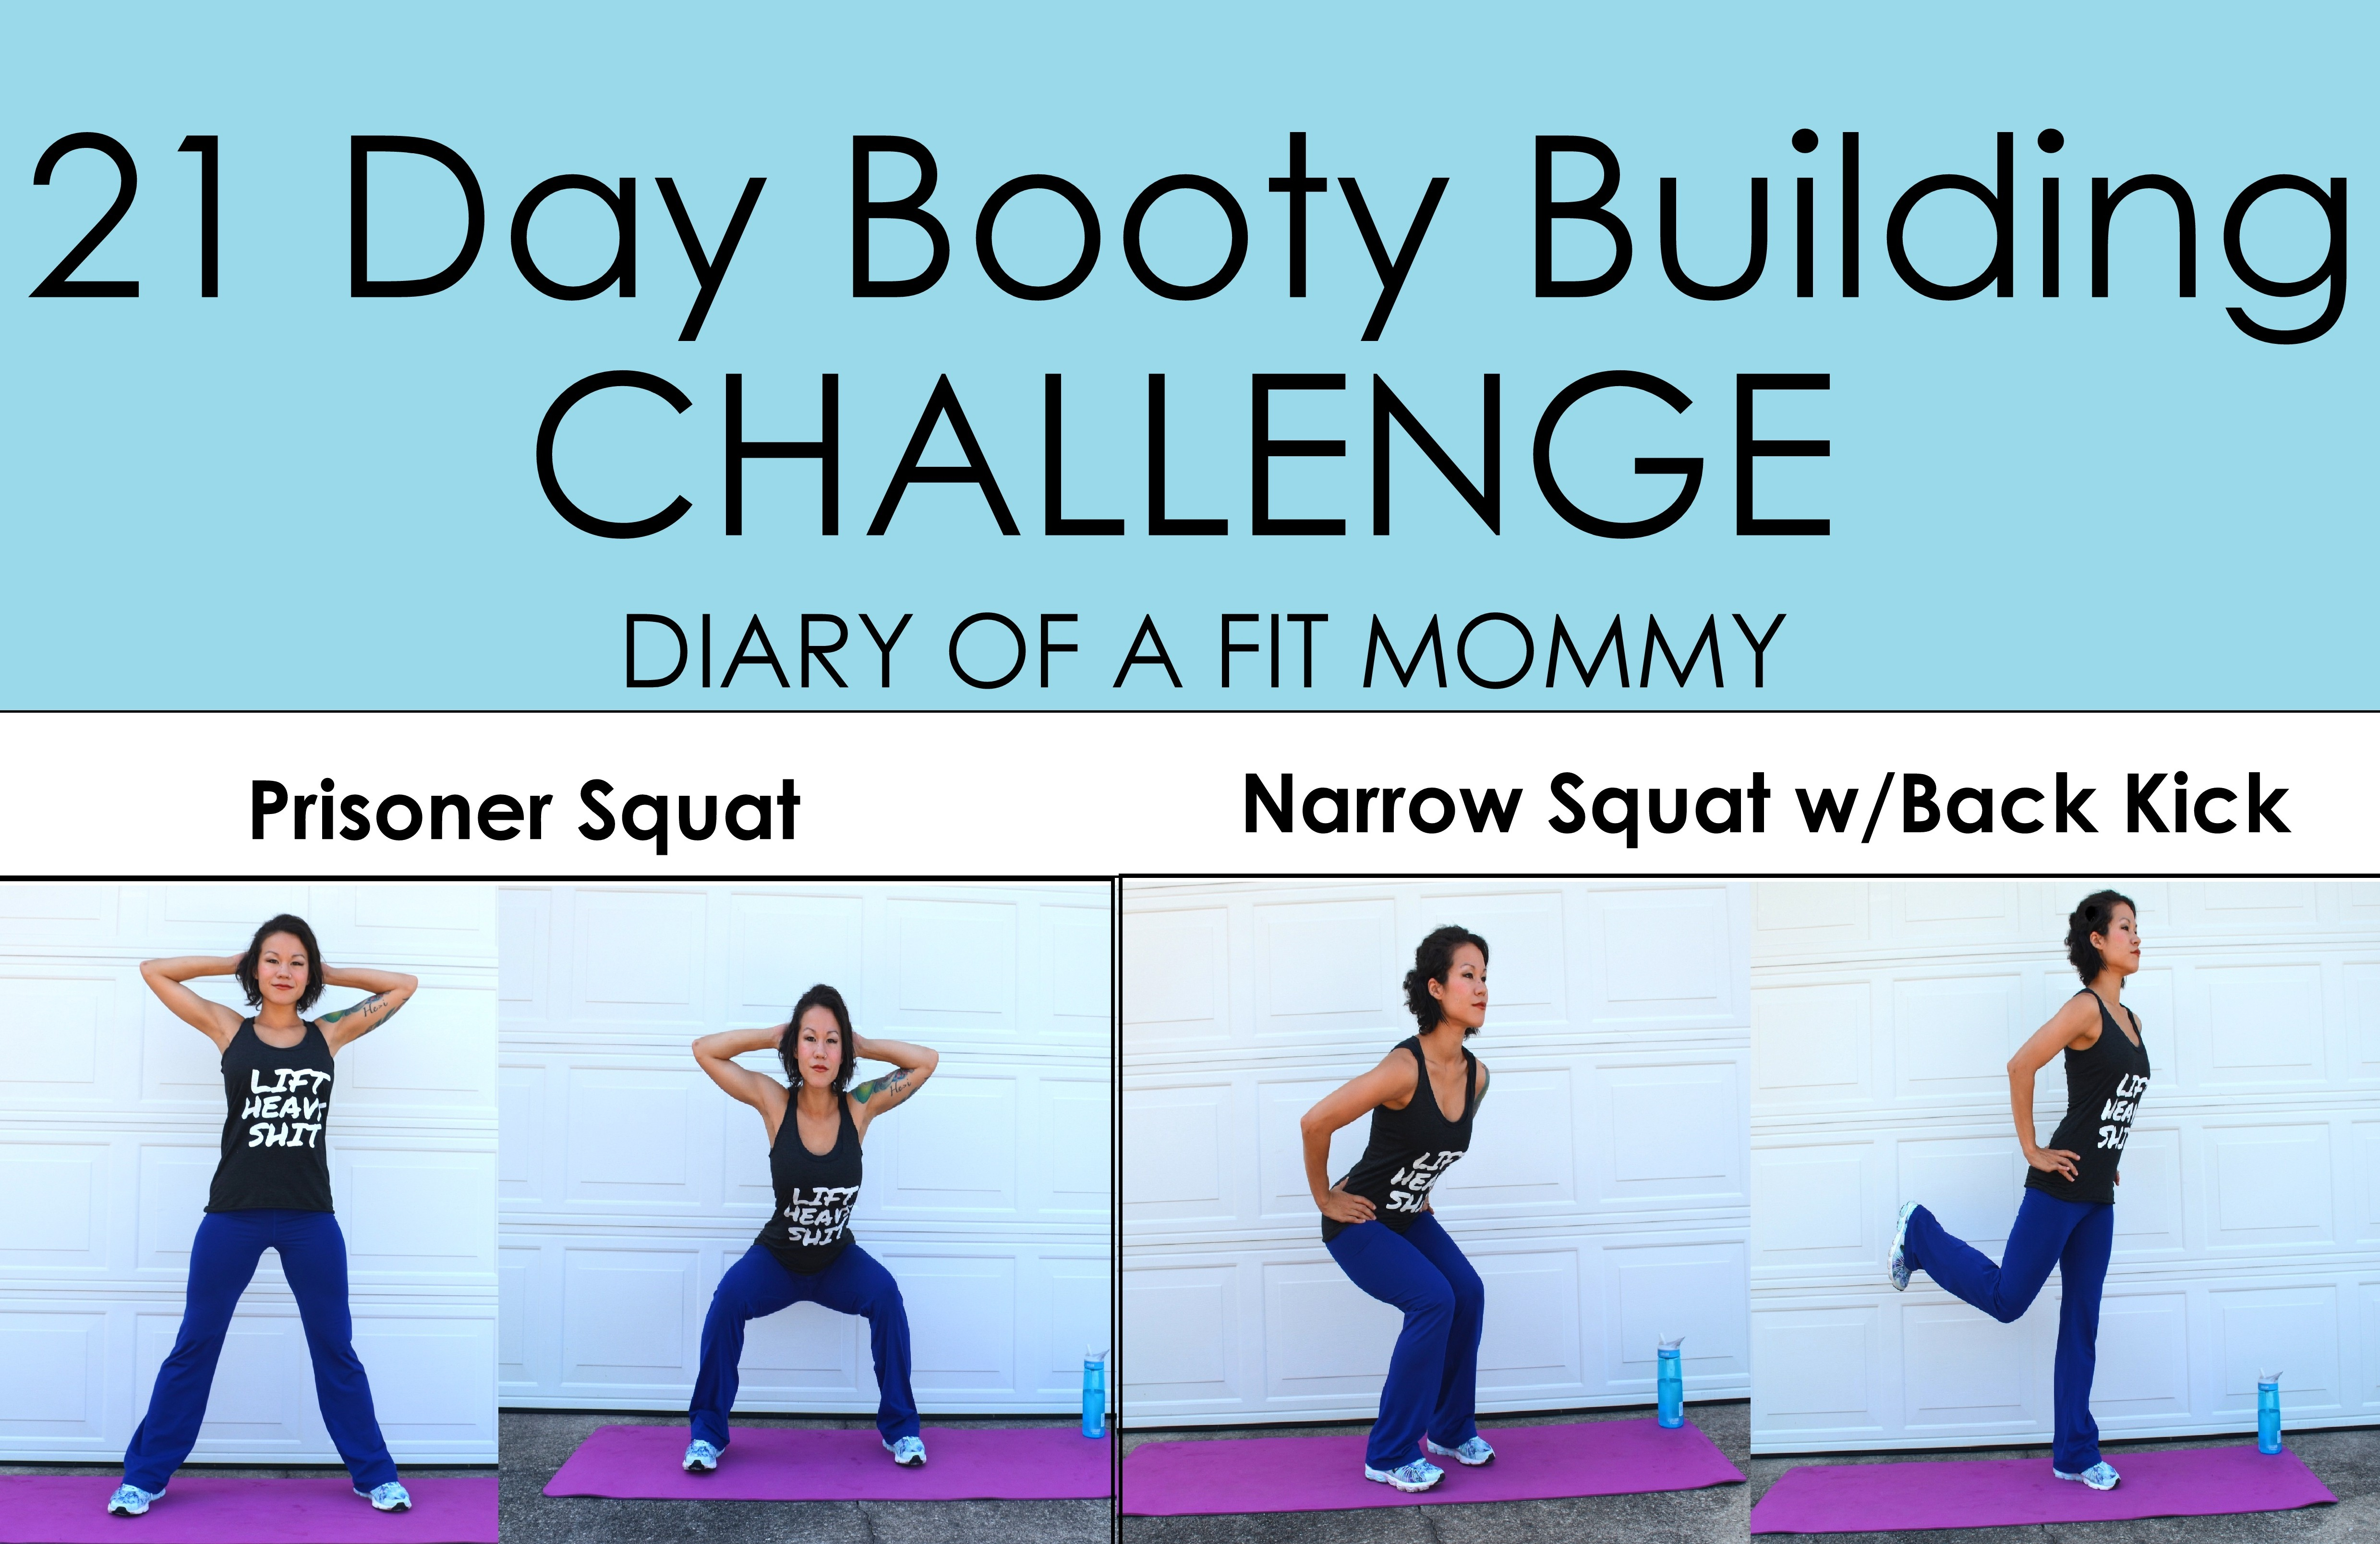 Weekend Fitness Tips Squat Workout How To Do J Crew